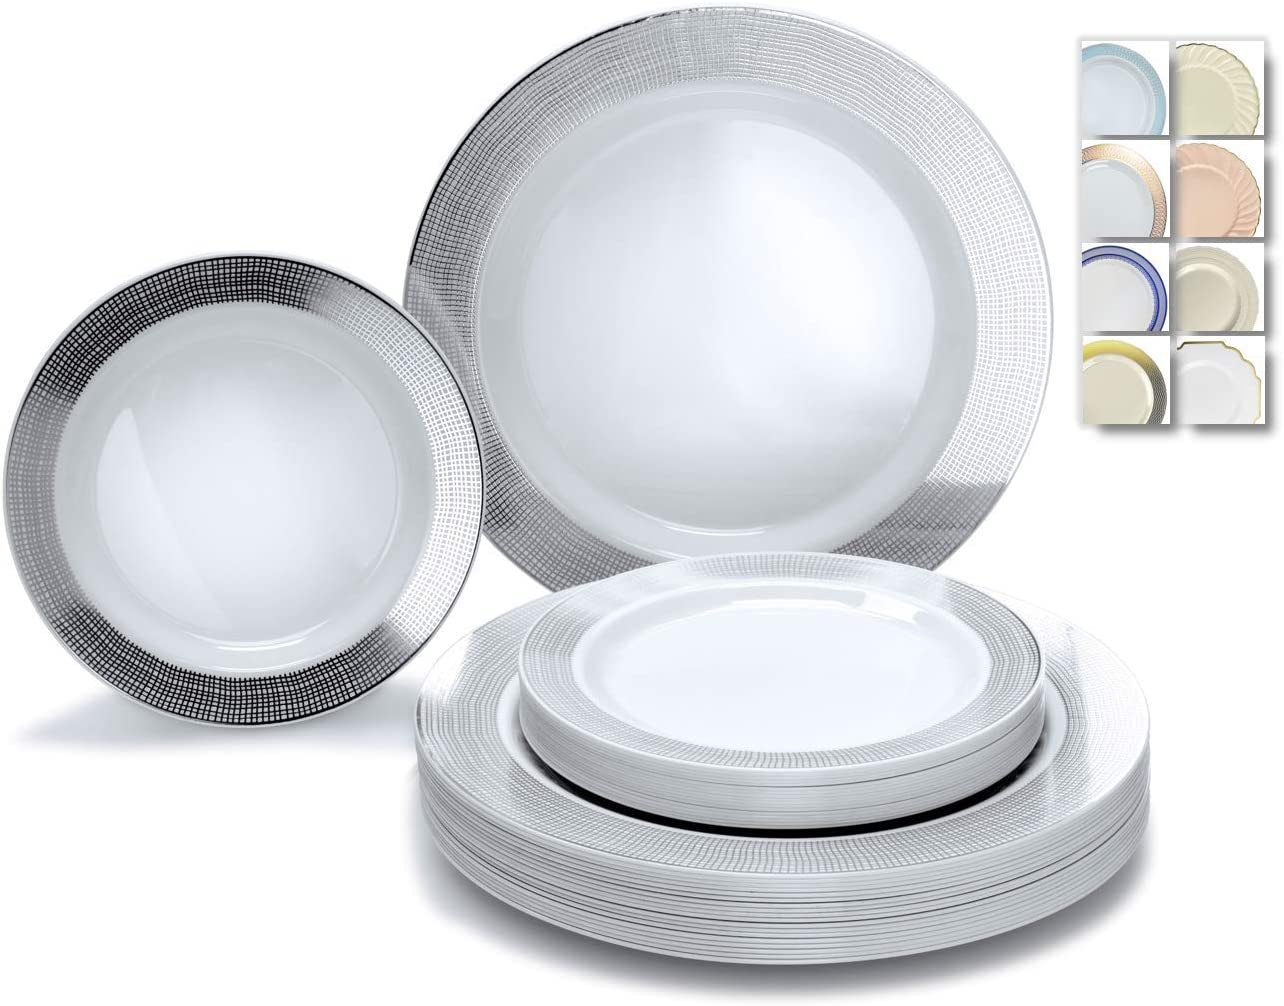 OCCASIONS 240 Plates Pack,(120 Guests) Heavyweight Wedding Party Disposable Plastic Plates Set -120 x 10.5'' Dinner + 120 x 7.5'' Salad/Dessert (Linen White/Silver) 71Hjrpm9u8L